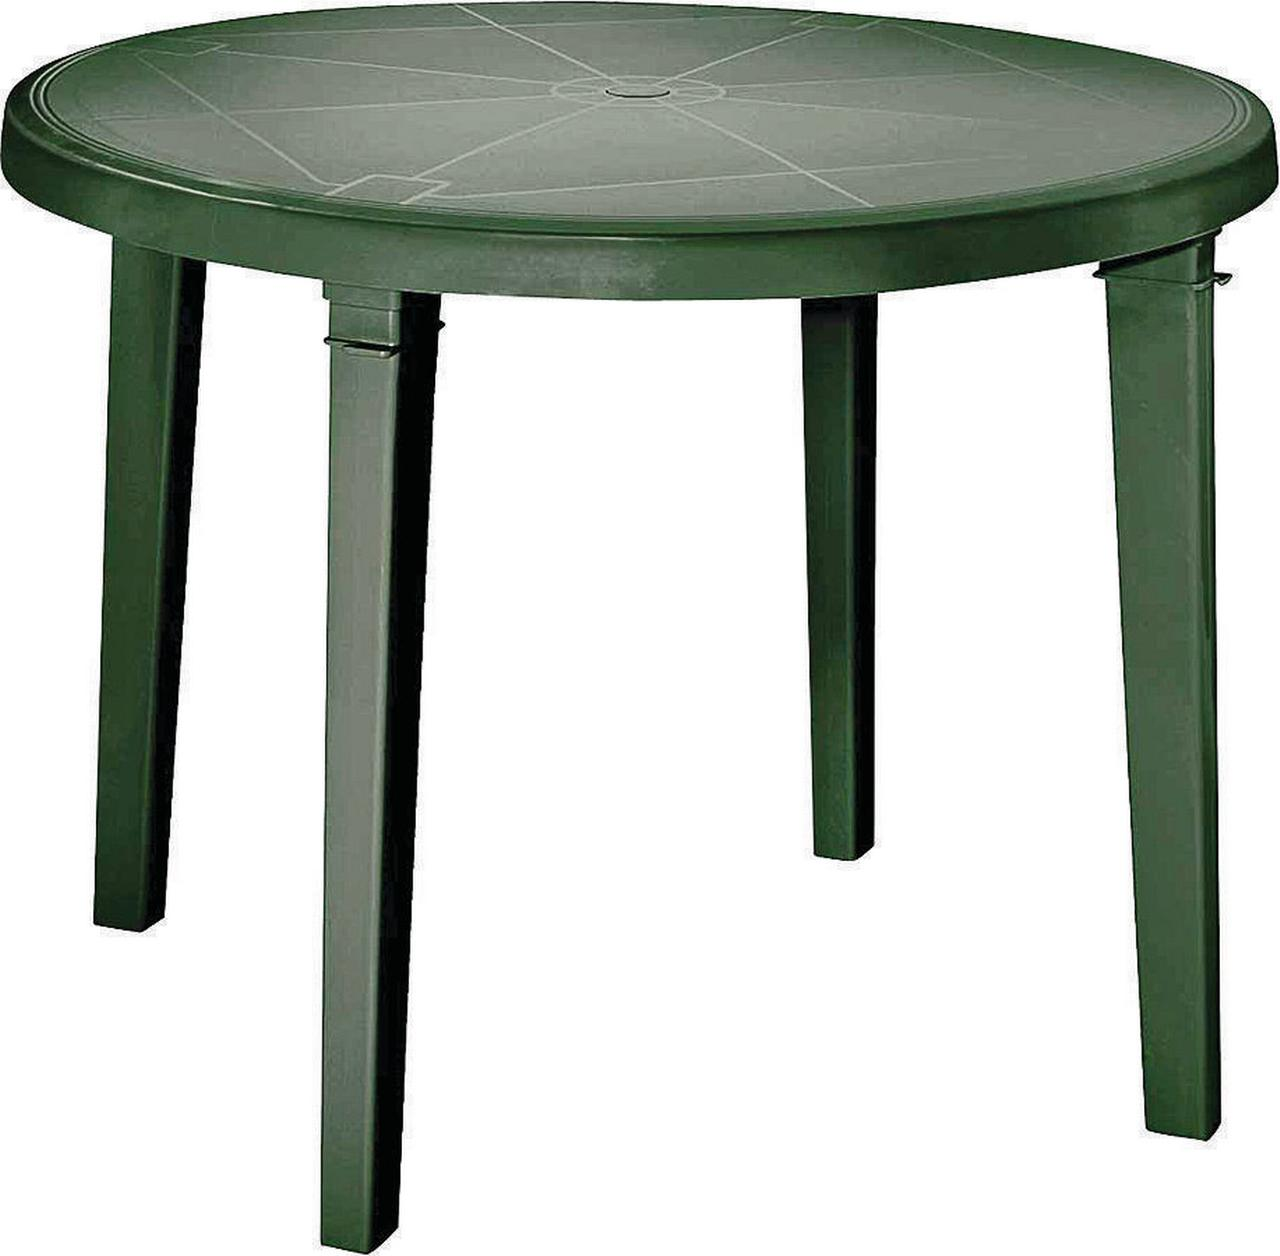 Image of Adams 8150-01-3770 Resin Dining Table, 38 in Dia X 28.6 in H, Round, 100% Polypropylene, Sage Green